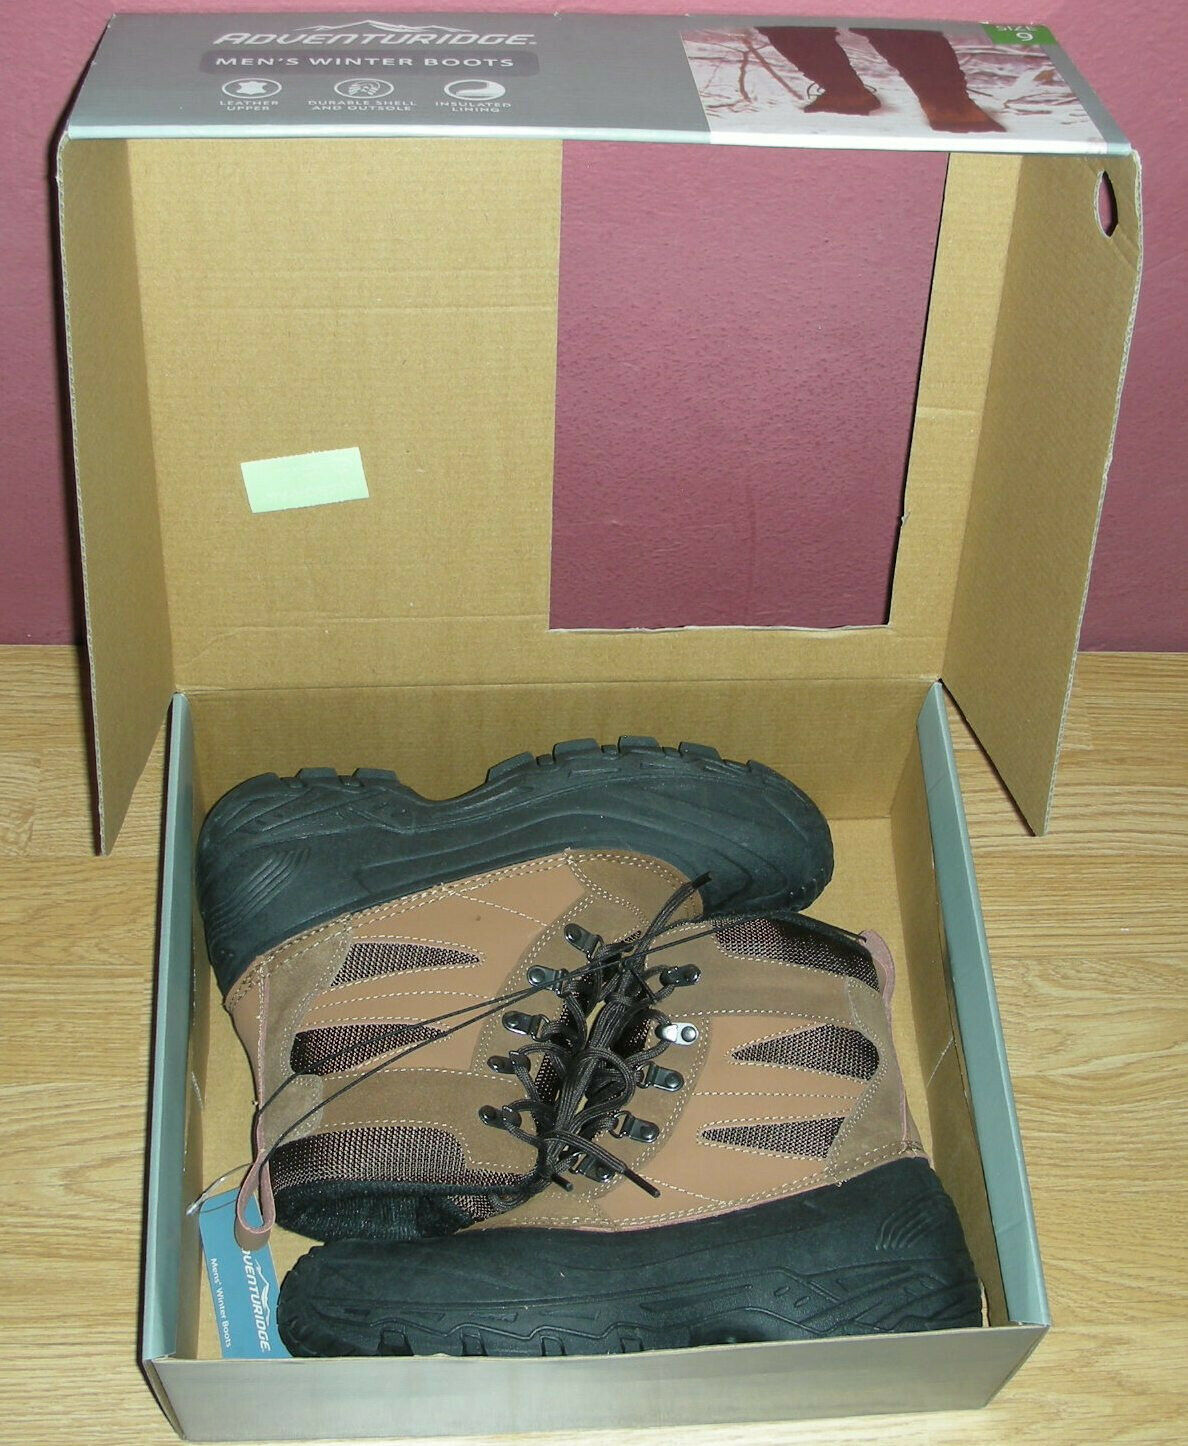 MEN'S WINTER BOOTS with 3M Thinsulate US shoe SIZE 9 Adventuridge